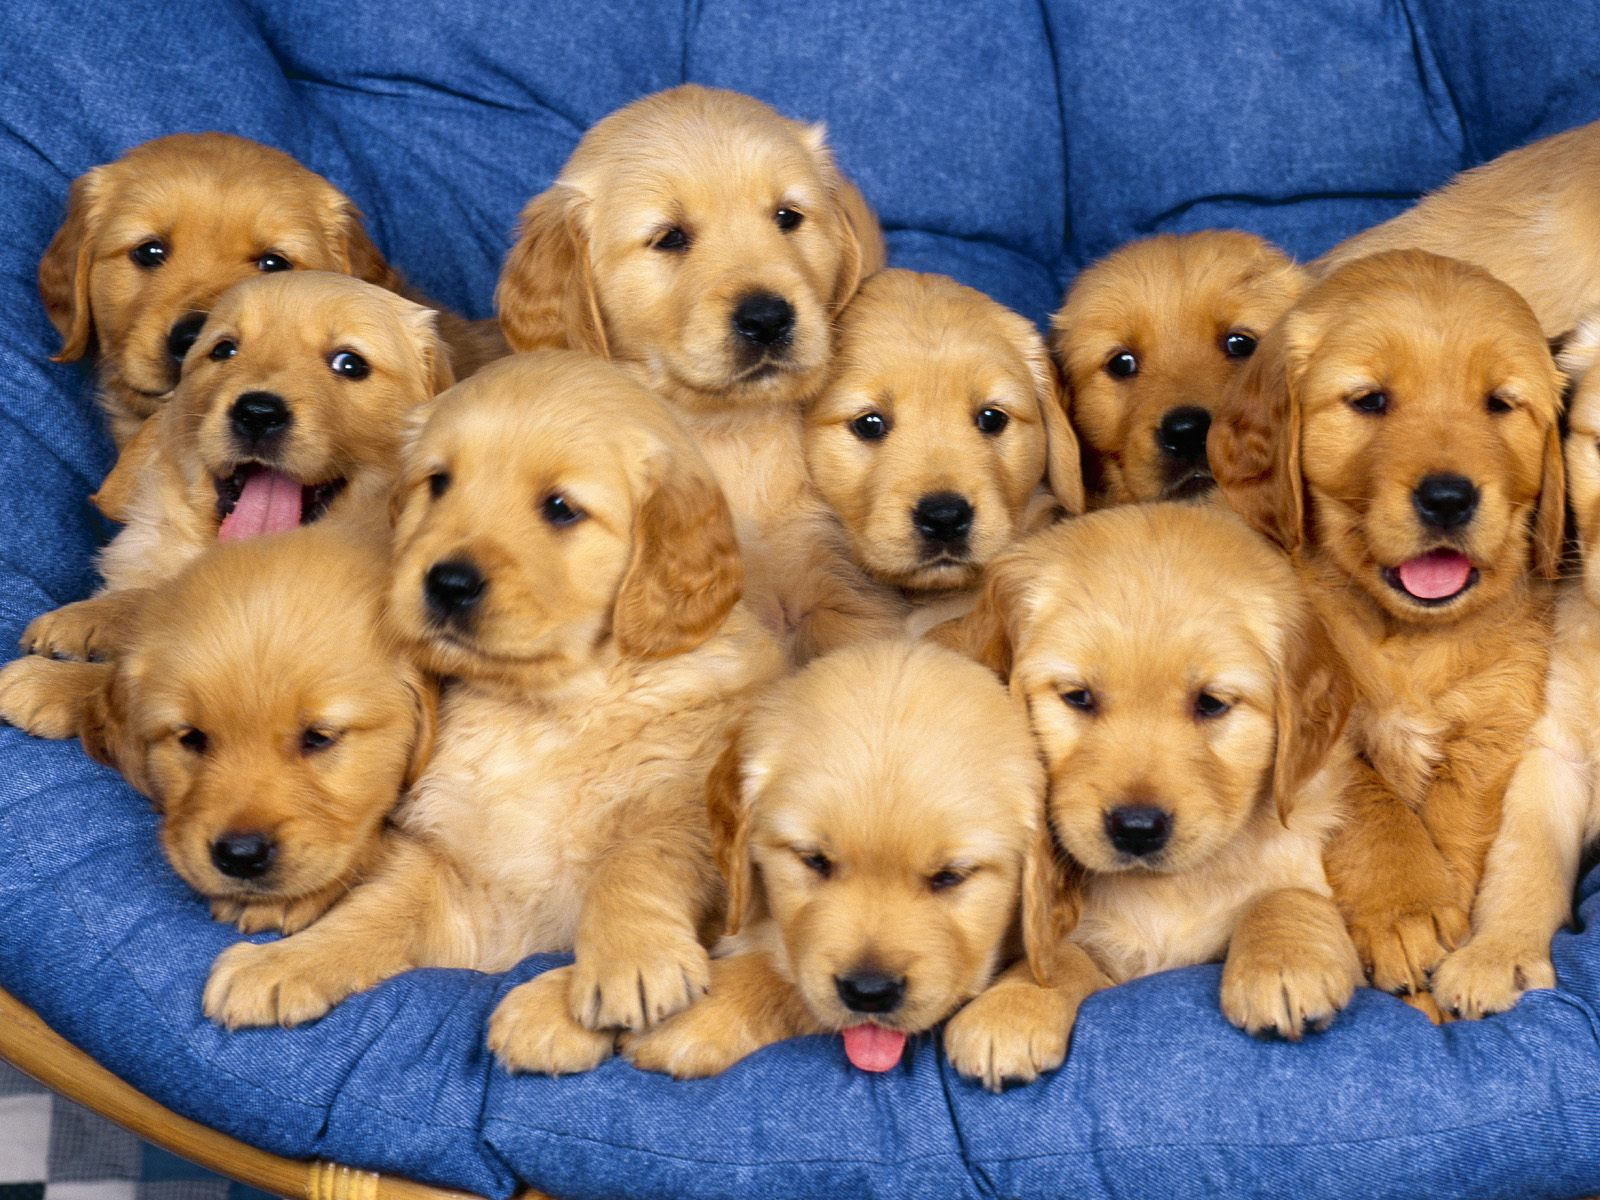 Dogs Food Stuff Cute Puppy Wallpapers 1600x1200